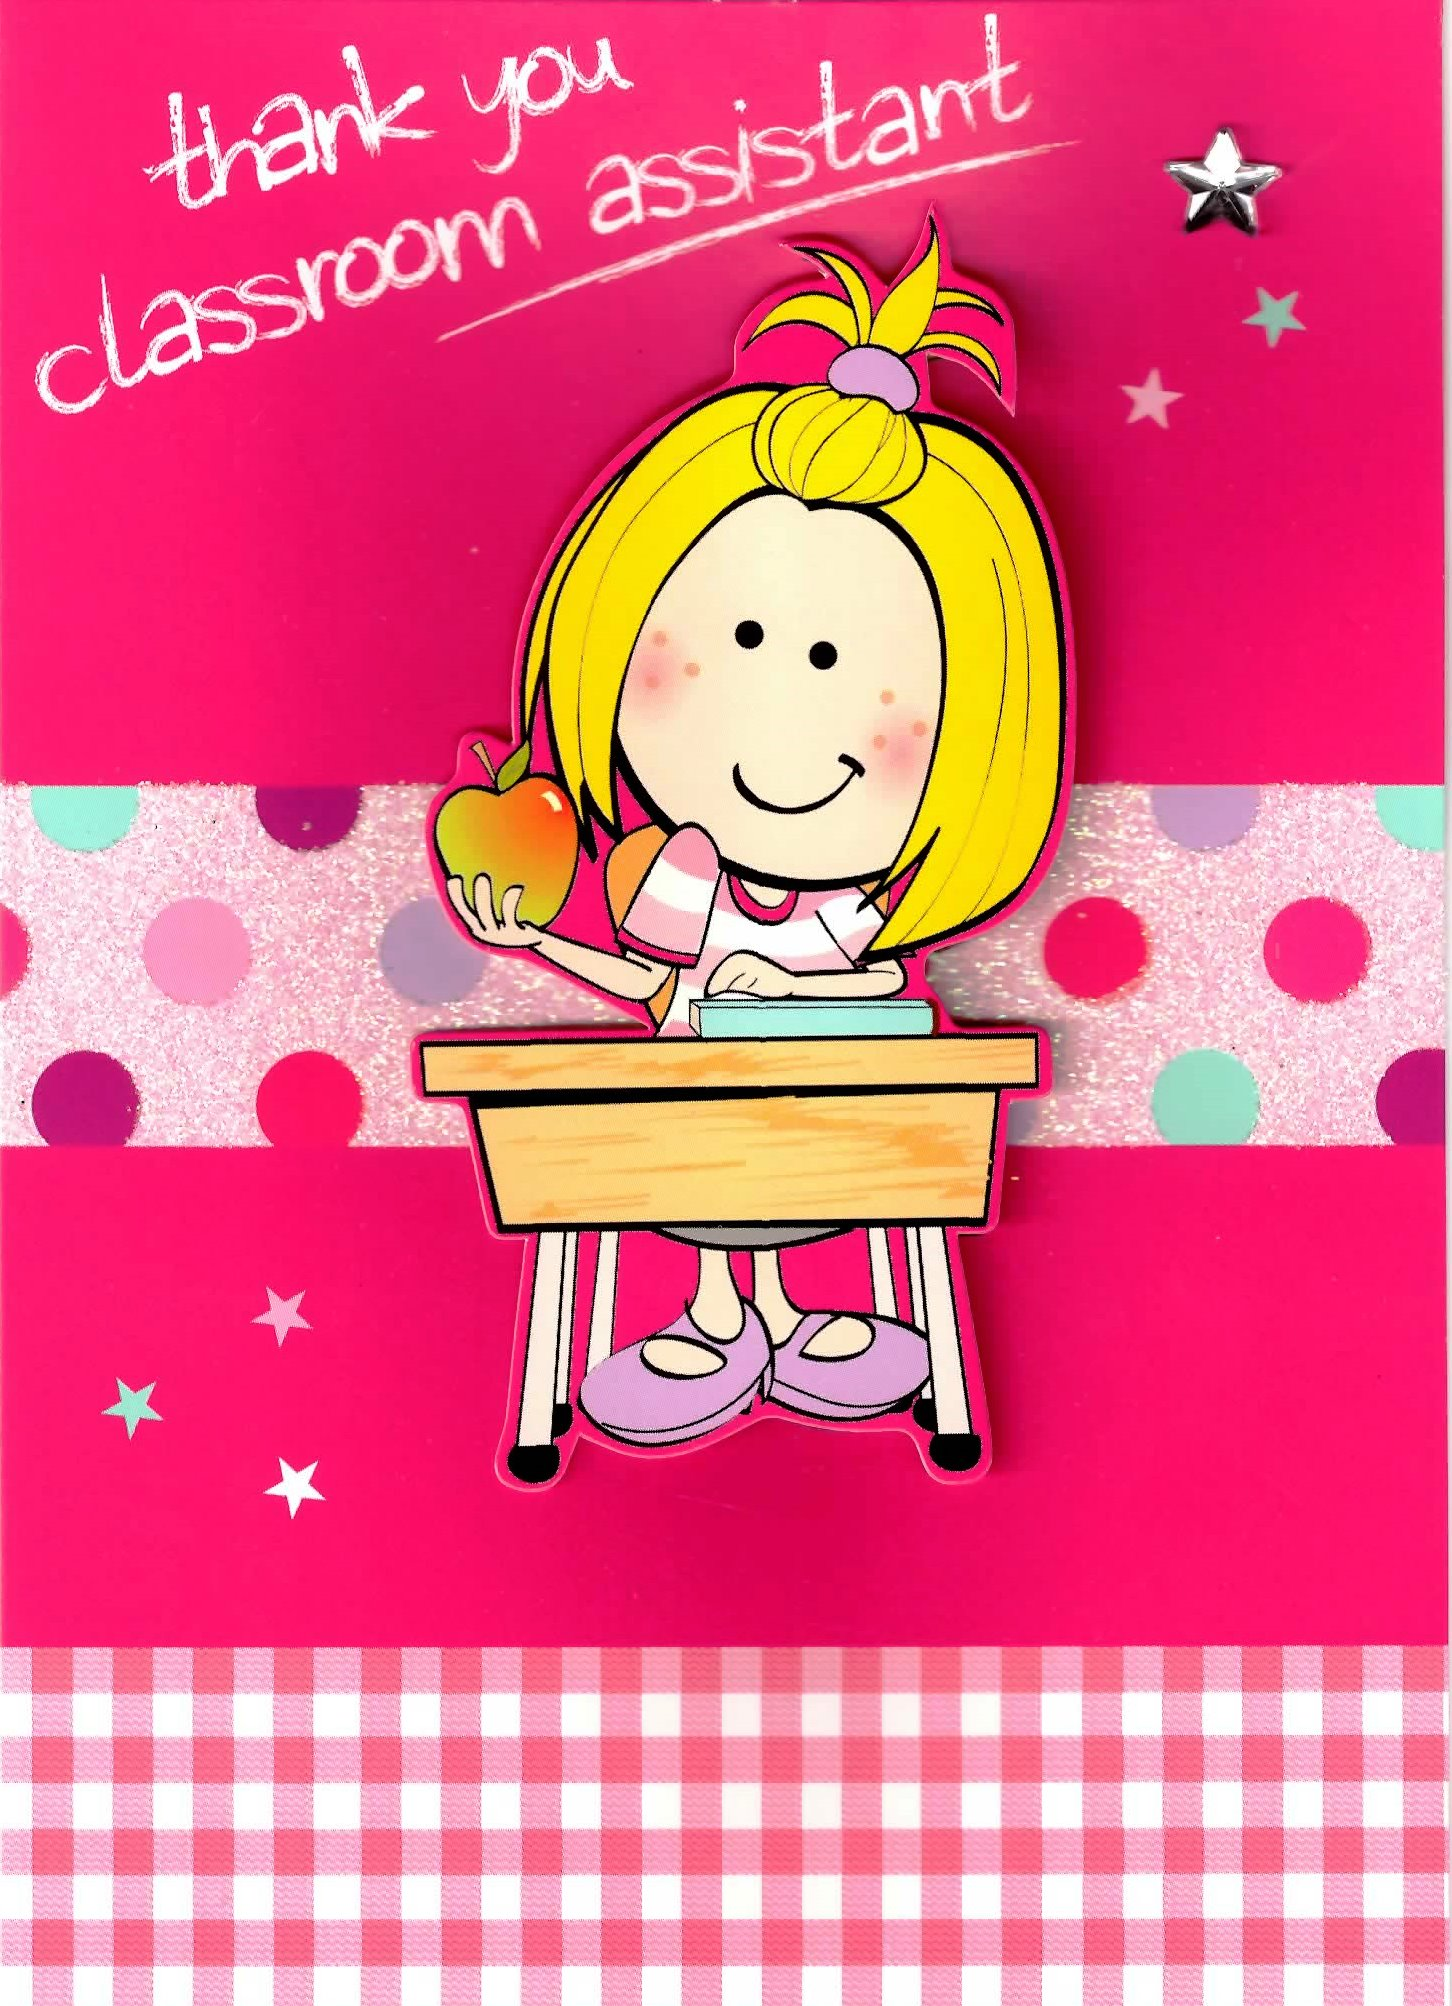 Girl Thank You Classroom Assistant Greeting Card